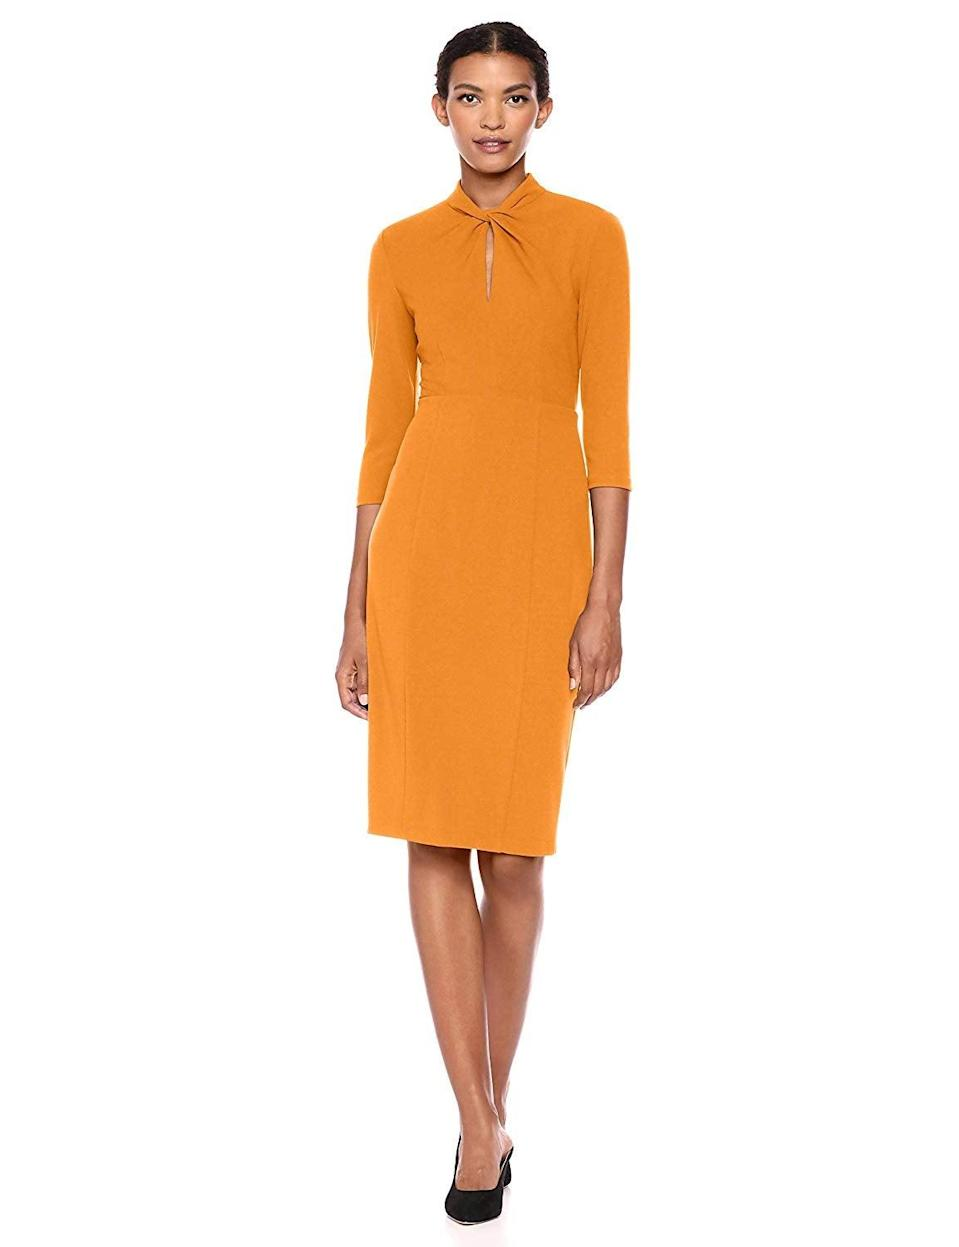 "<br><br><strong>Donna Morgan</strong> Knotted Crepe Sheath Dress, $, available at <a href=""https://www.amazon.com/Donna-Morgan-Womens-Knotted-Sheath/dp/B07NSXQNJT"" rel=""nofollow noopener"" target=""_blank"" data-ylk=""slk:Amazon"" class=""link rapid-noclick-resp"">Amazon</a>"